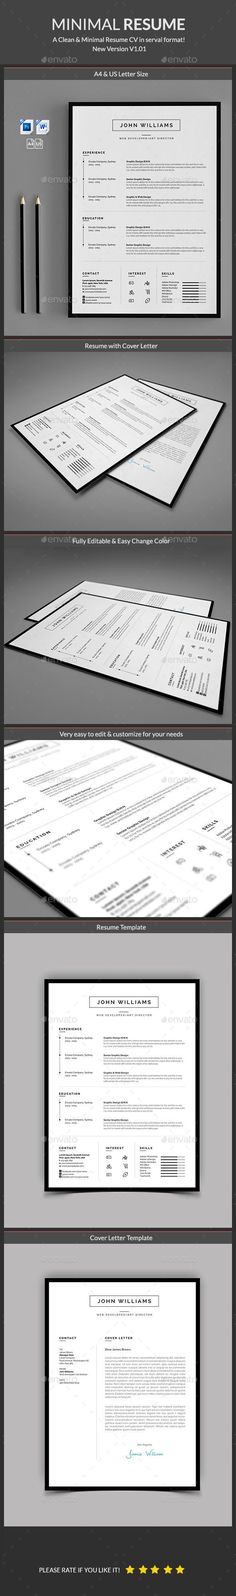 best resume template malaysia resumecurriculum vitae template msn scholarship in sample resume